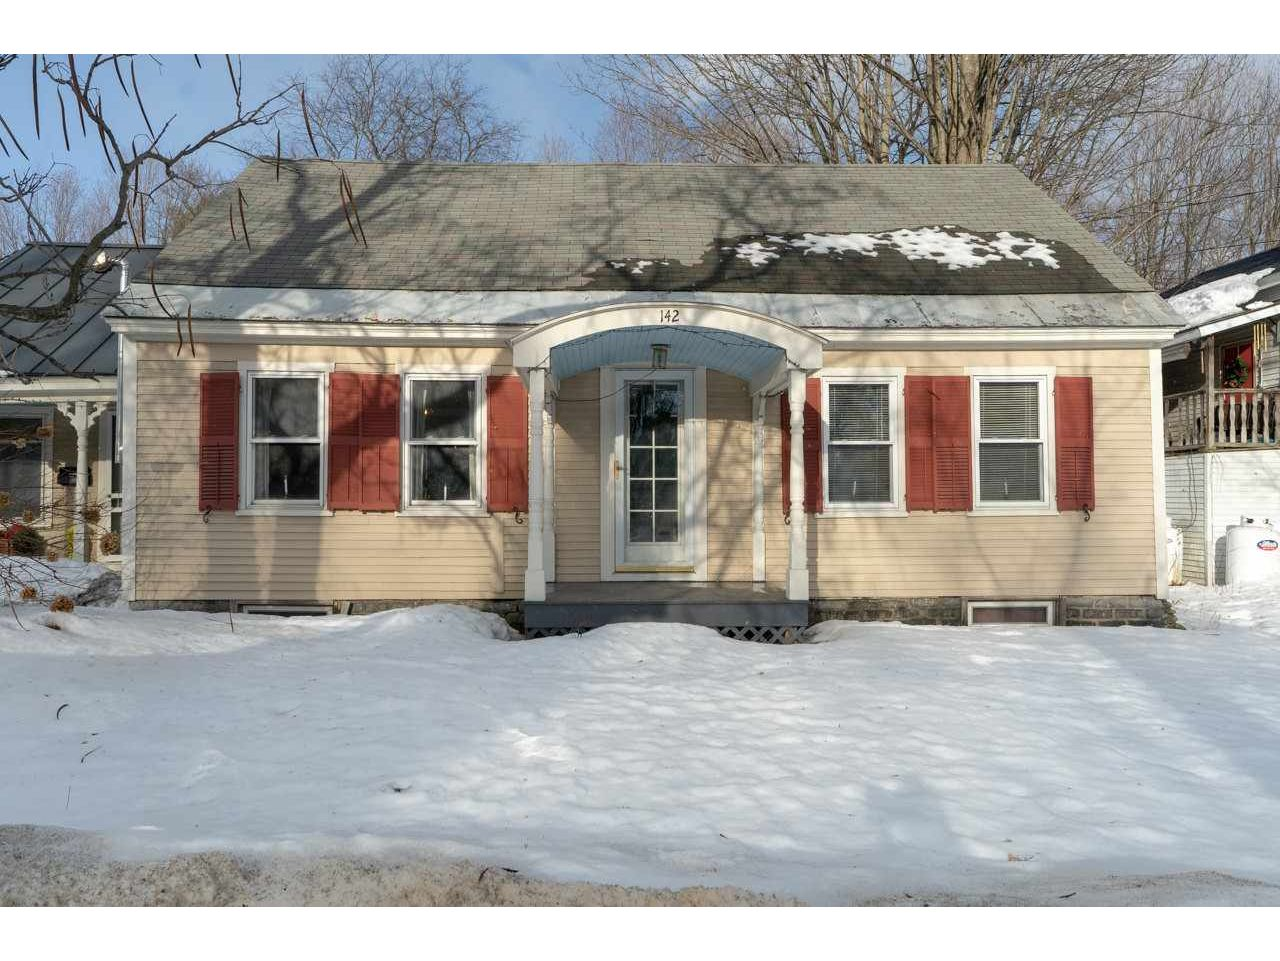 Sold property in Northfield